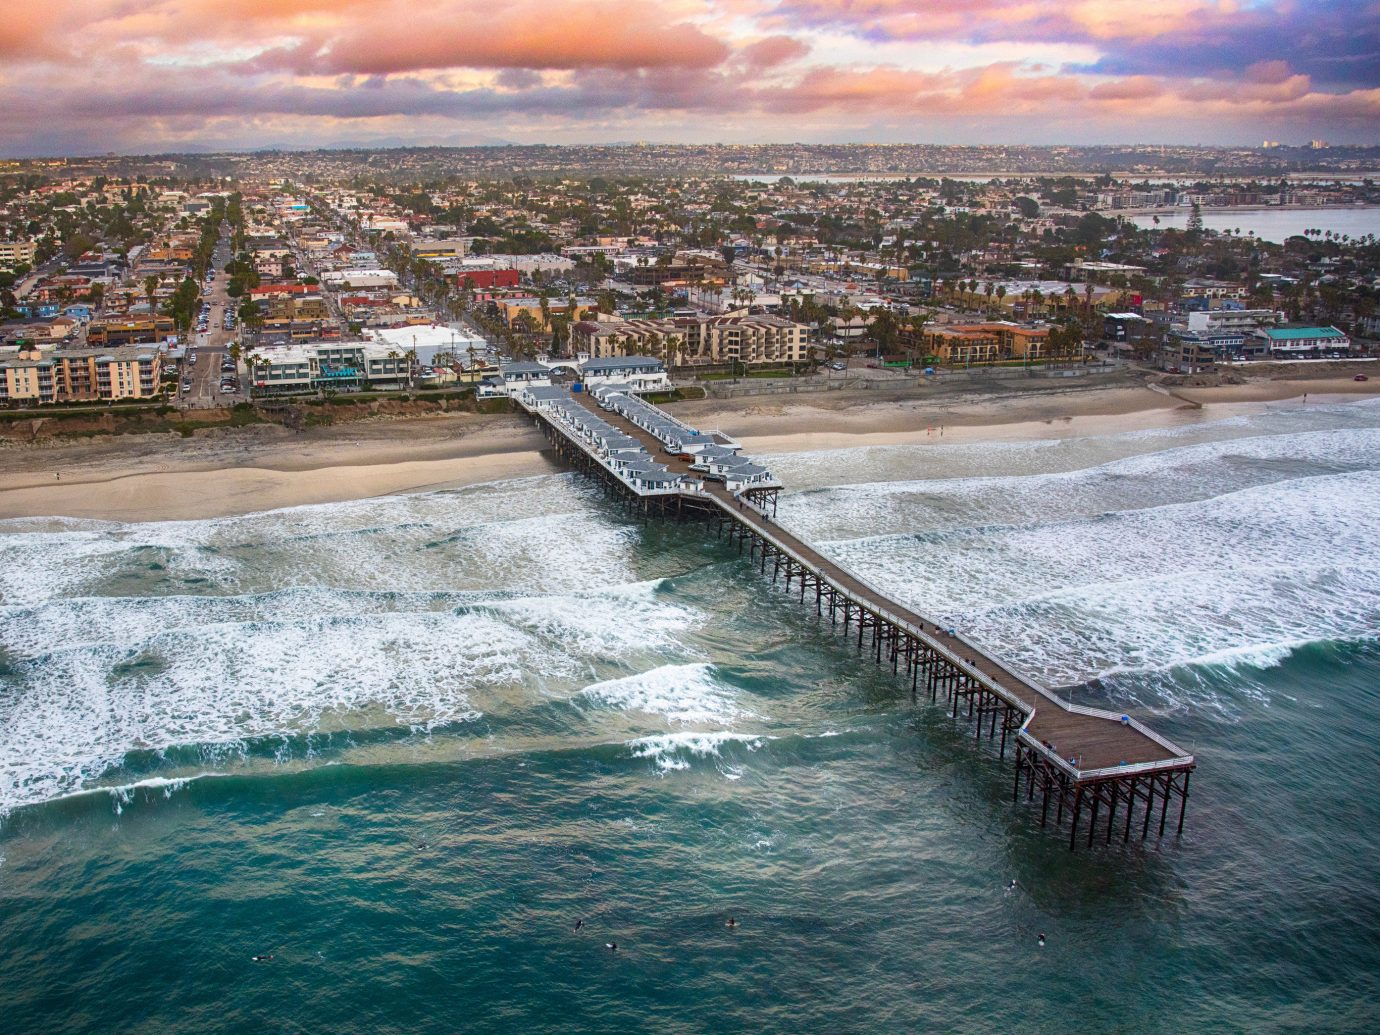 Beach Hotels Trip Ideas water sky outdoor Sea body of water Coast River shore Ocean cityscape vacation wave bay aerial photography dusk reflection Harbor